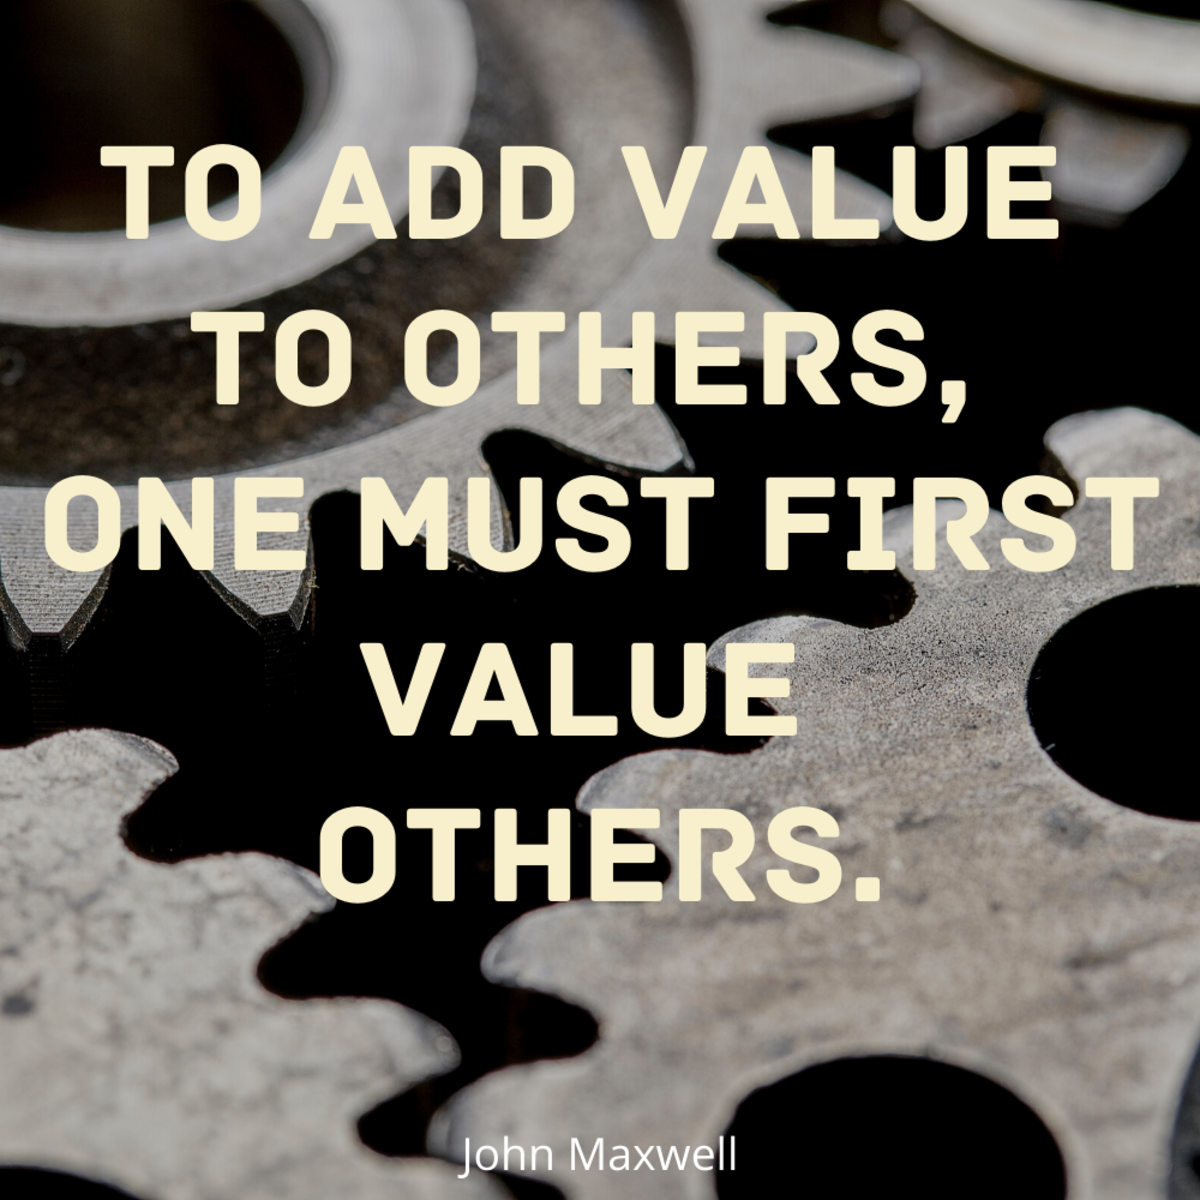 """To add value to others, one must first value others."" John Maxwell"